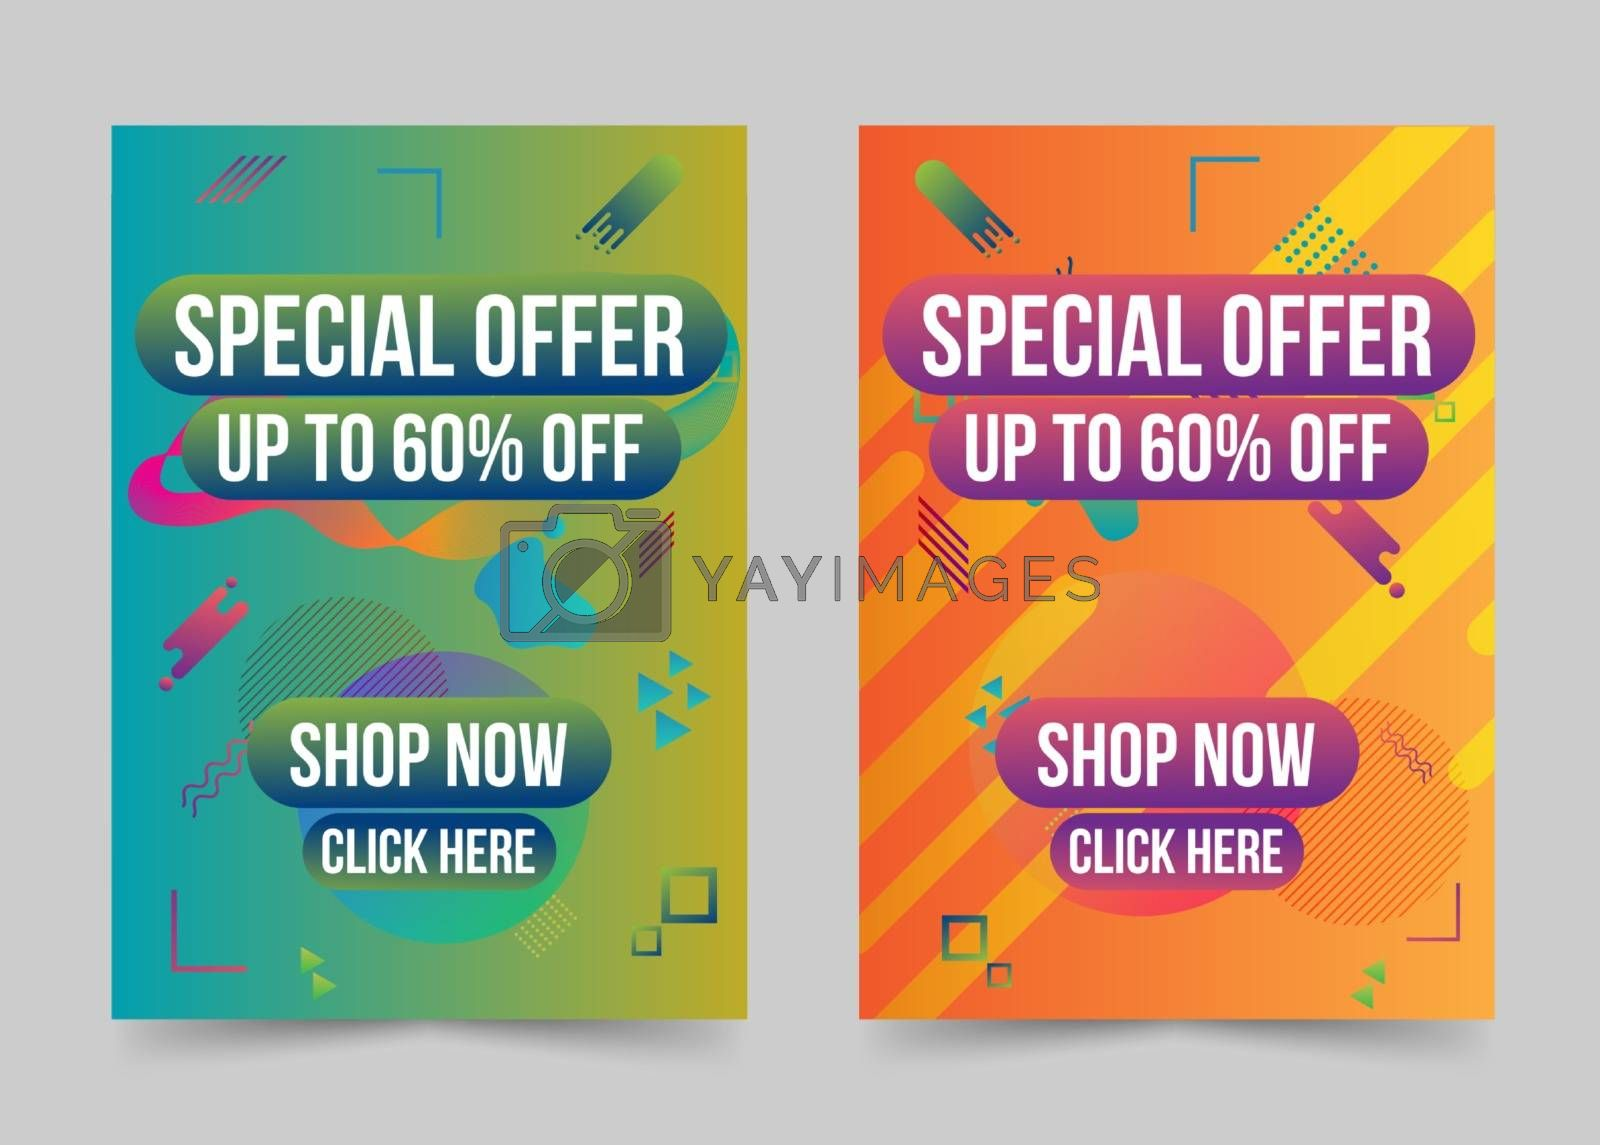 Special offer banner set modern geometric shapes abstract design by Zeedoherty